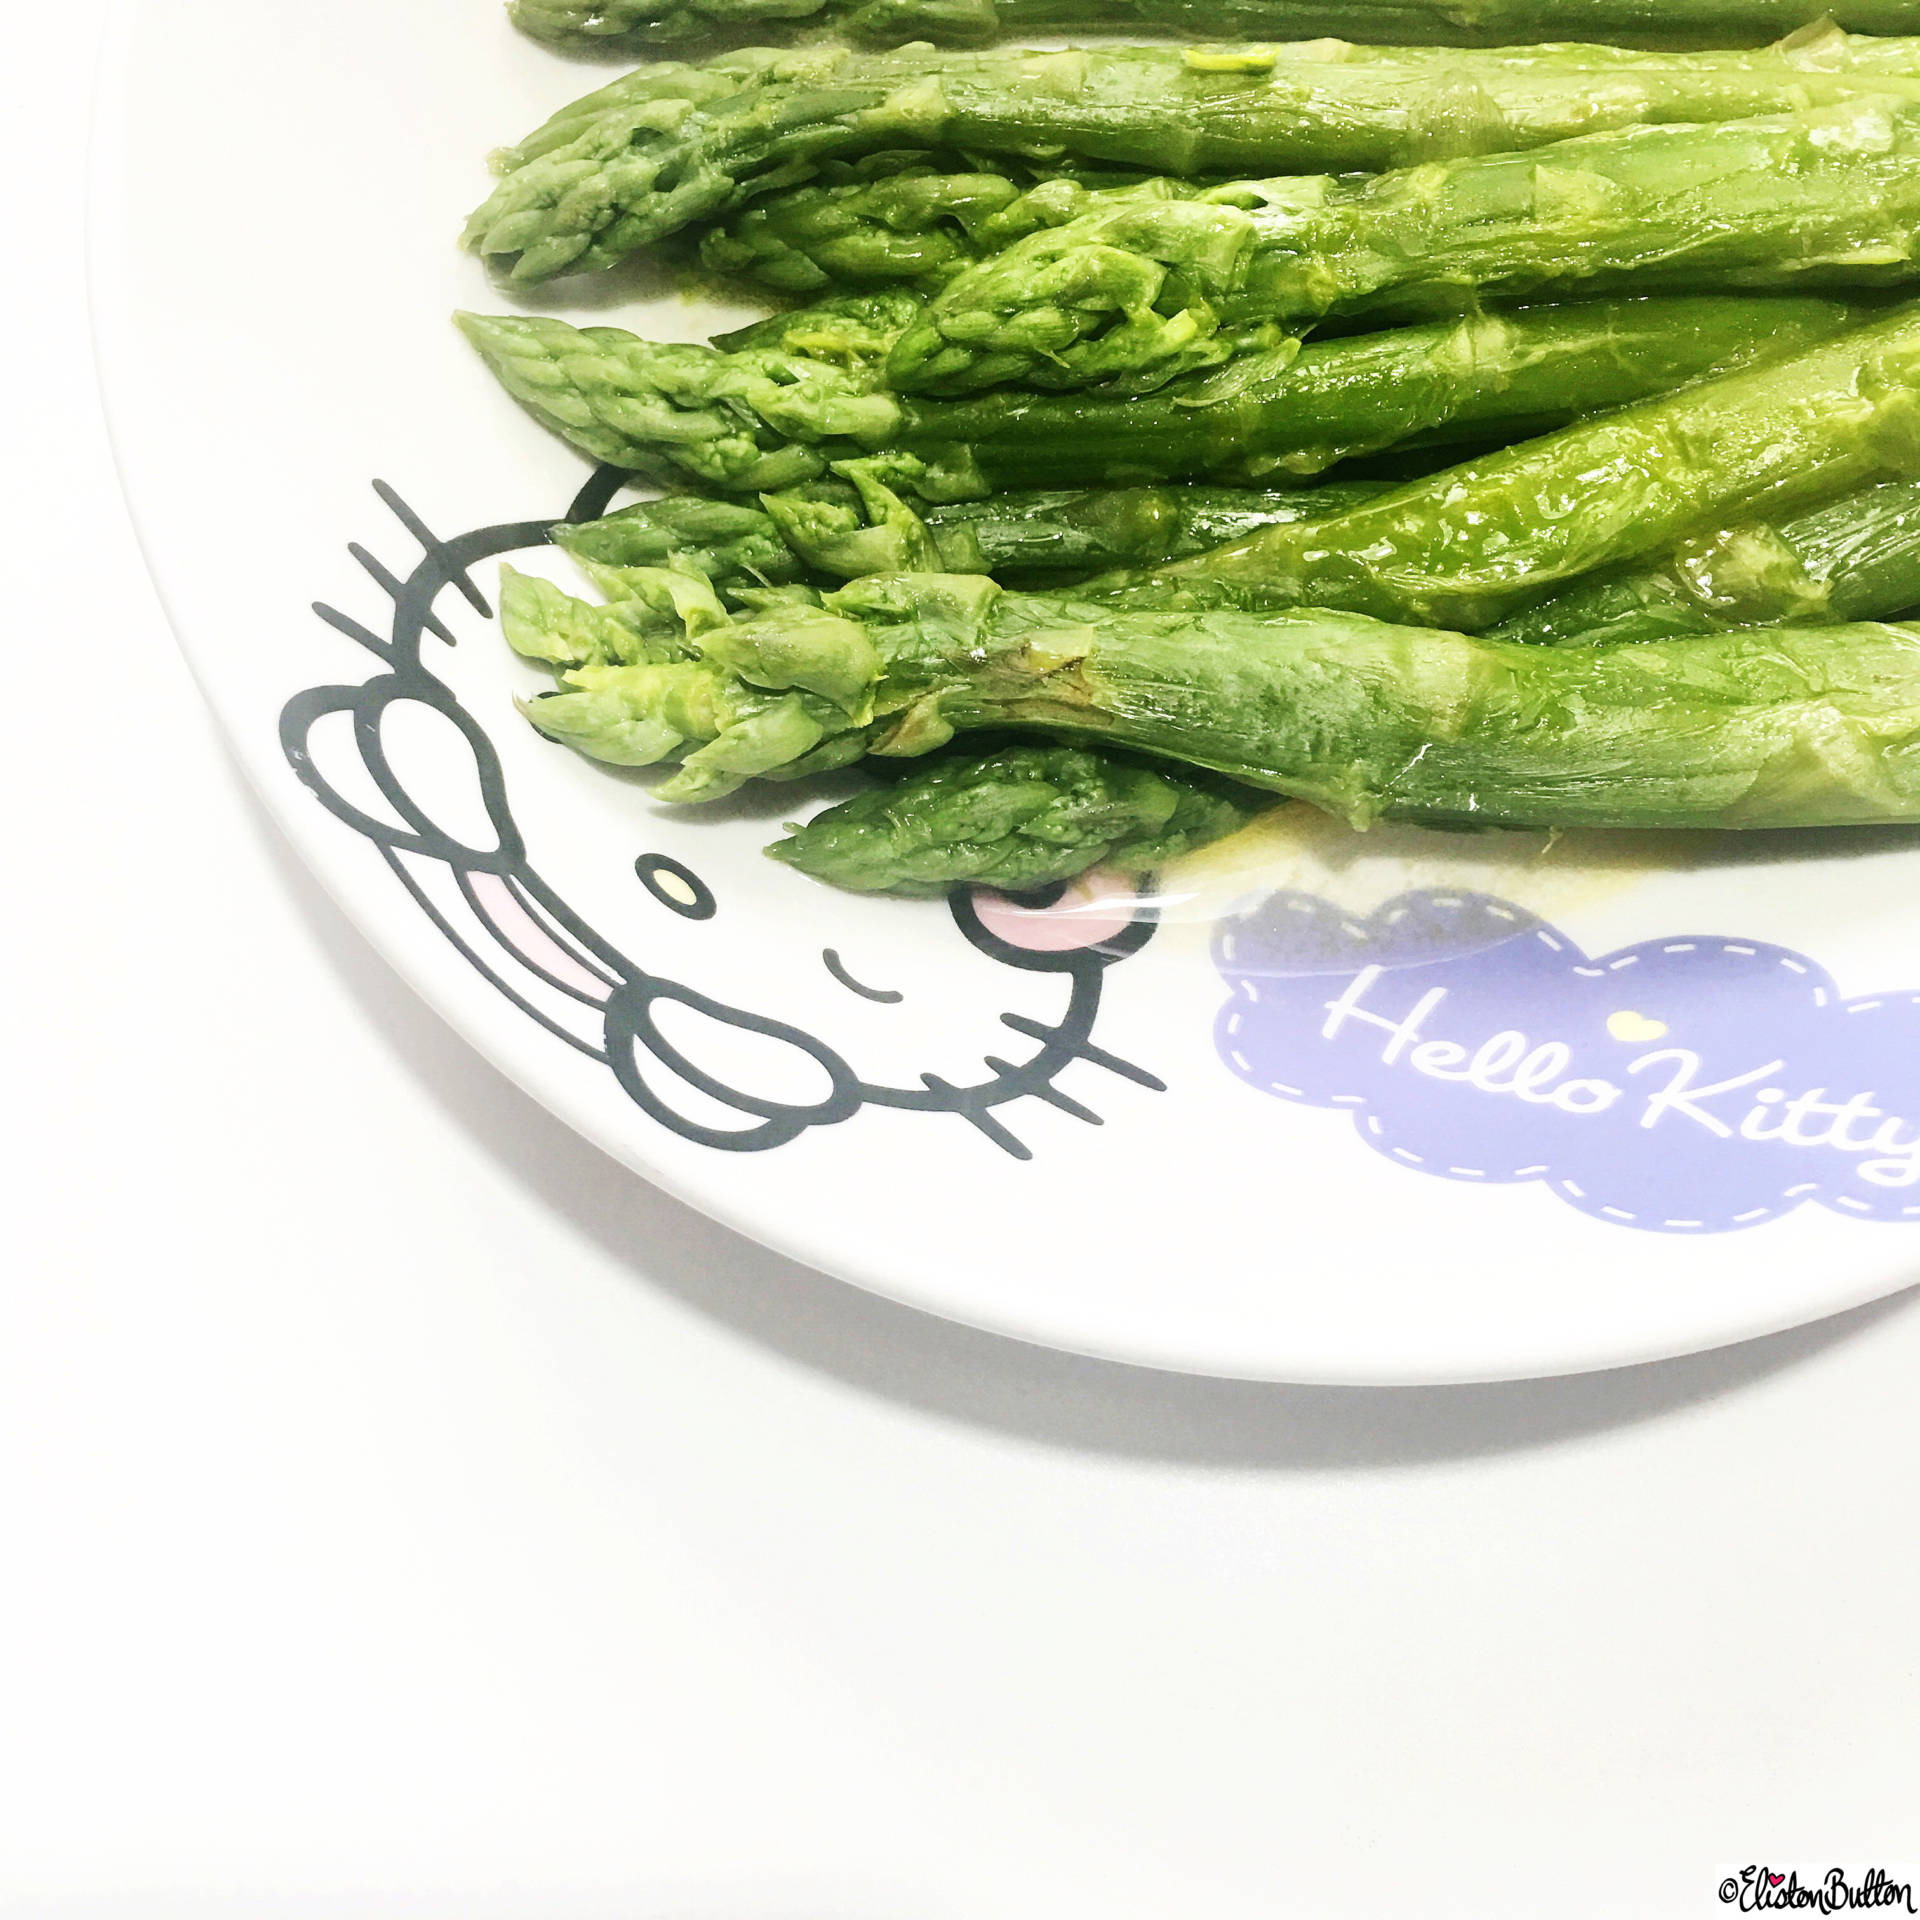 Day 31 - What I Saw Today - Asparagus - Photo-a-Day – May 2016 at www.elistonbutton.com - Eliston Button - That Crafty Kid – Art, Design, Craft & Adventure.